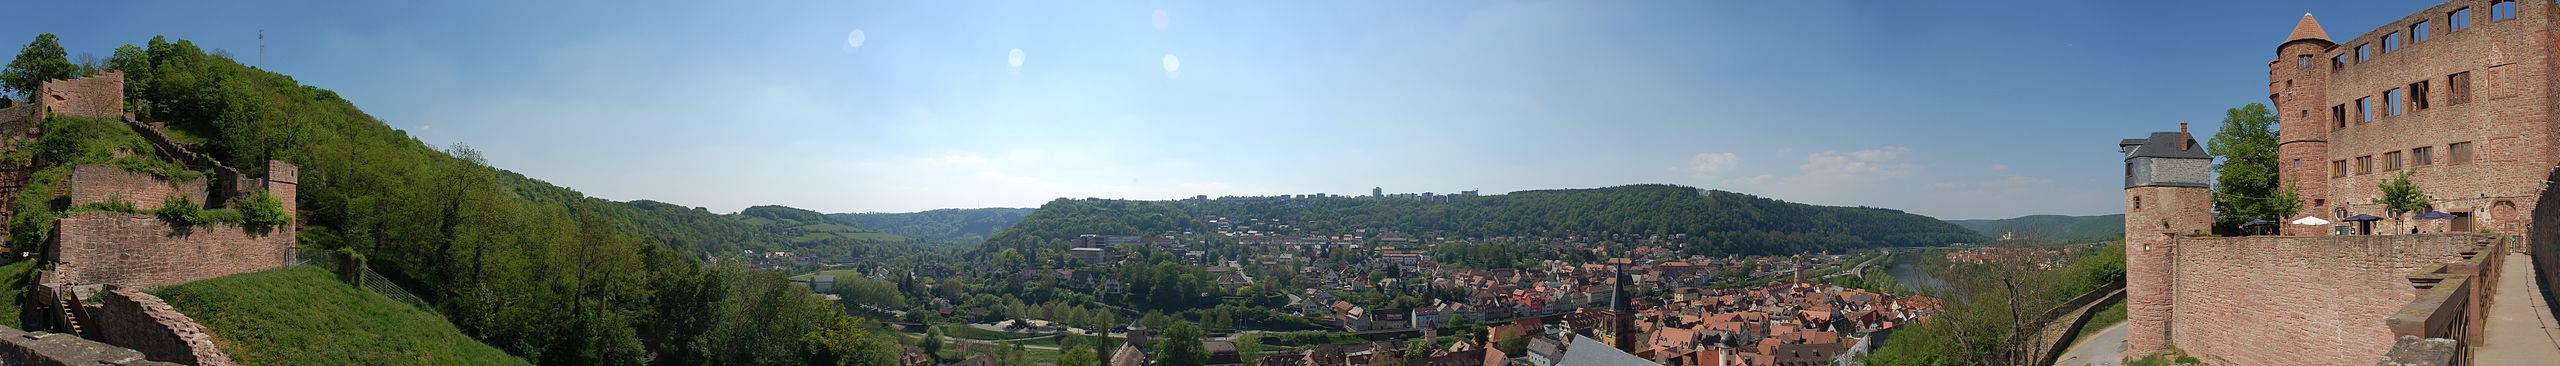 bad mergentheim travel guide wikivoyage